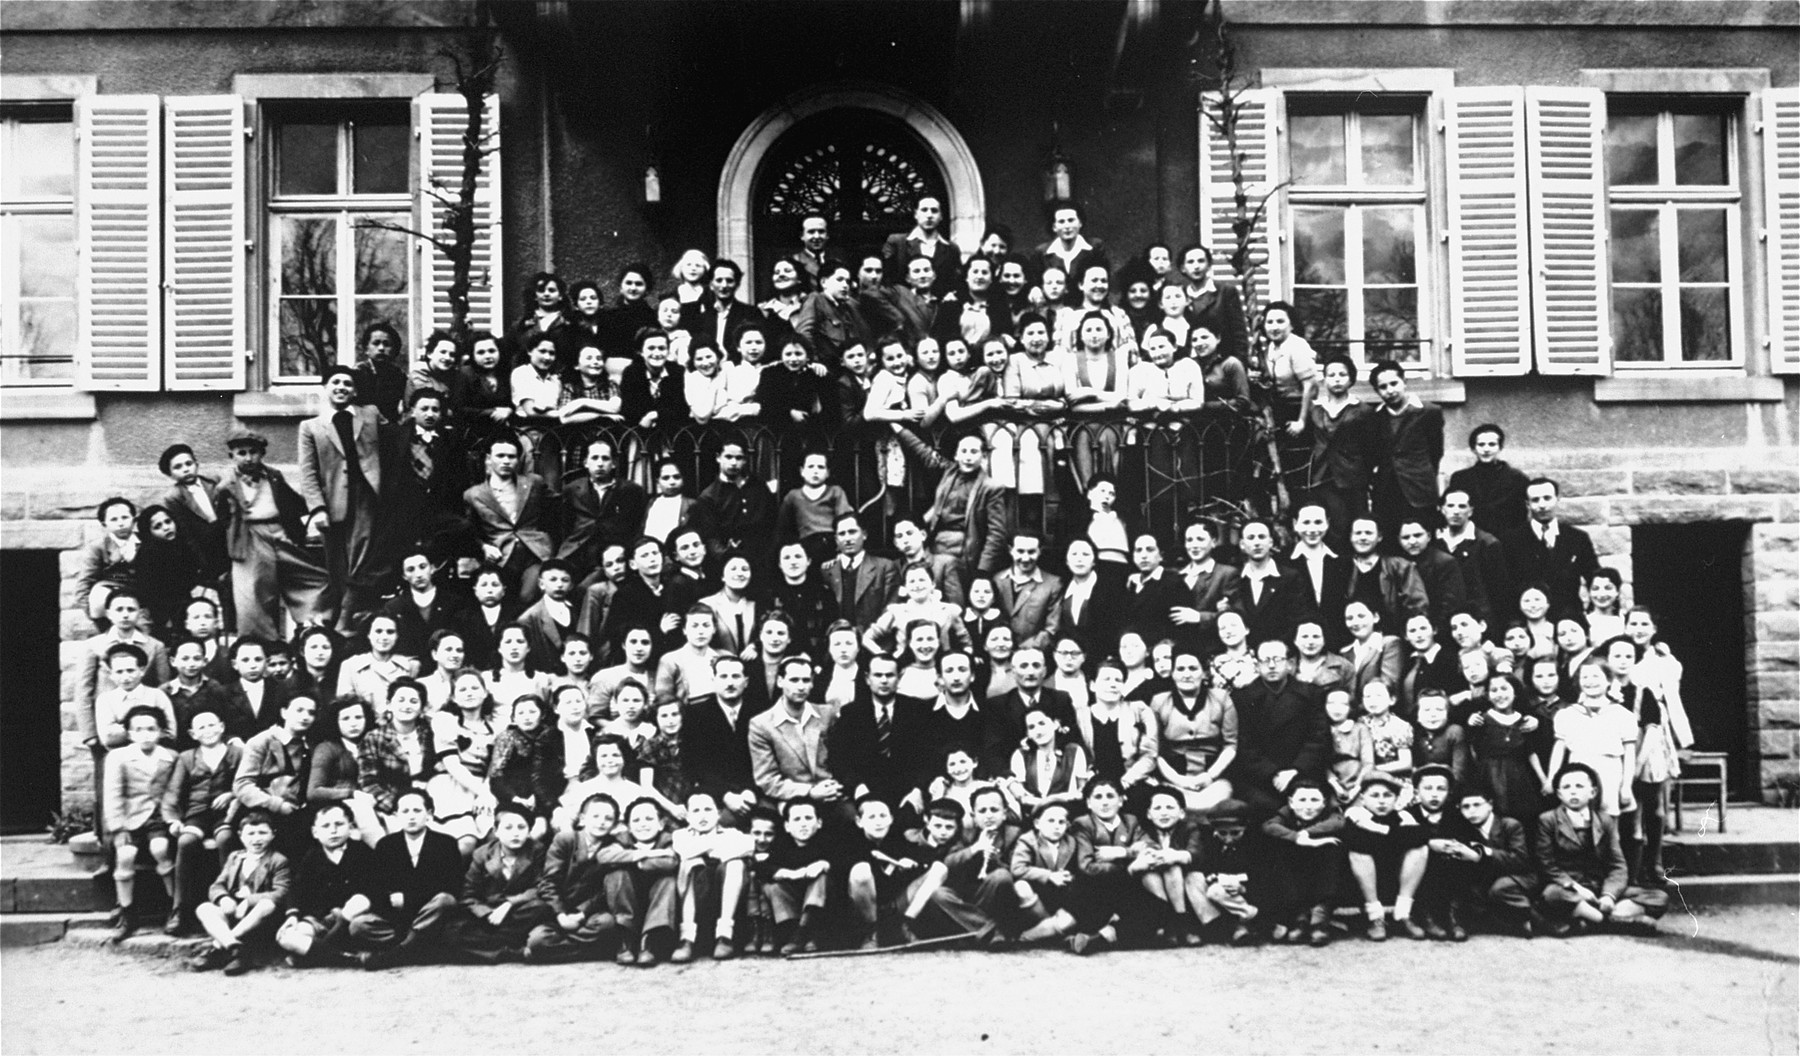 Group portrait of Jewish children at the Schirmeck orphanage in France.    Eve Nisencwajg is among the children in this group.